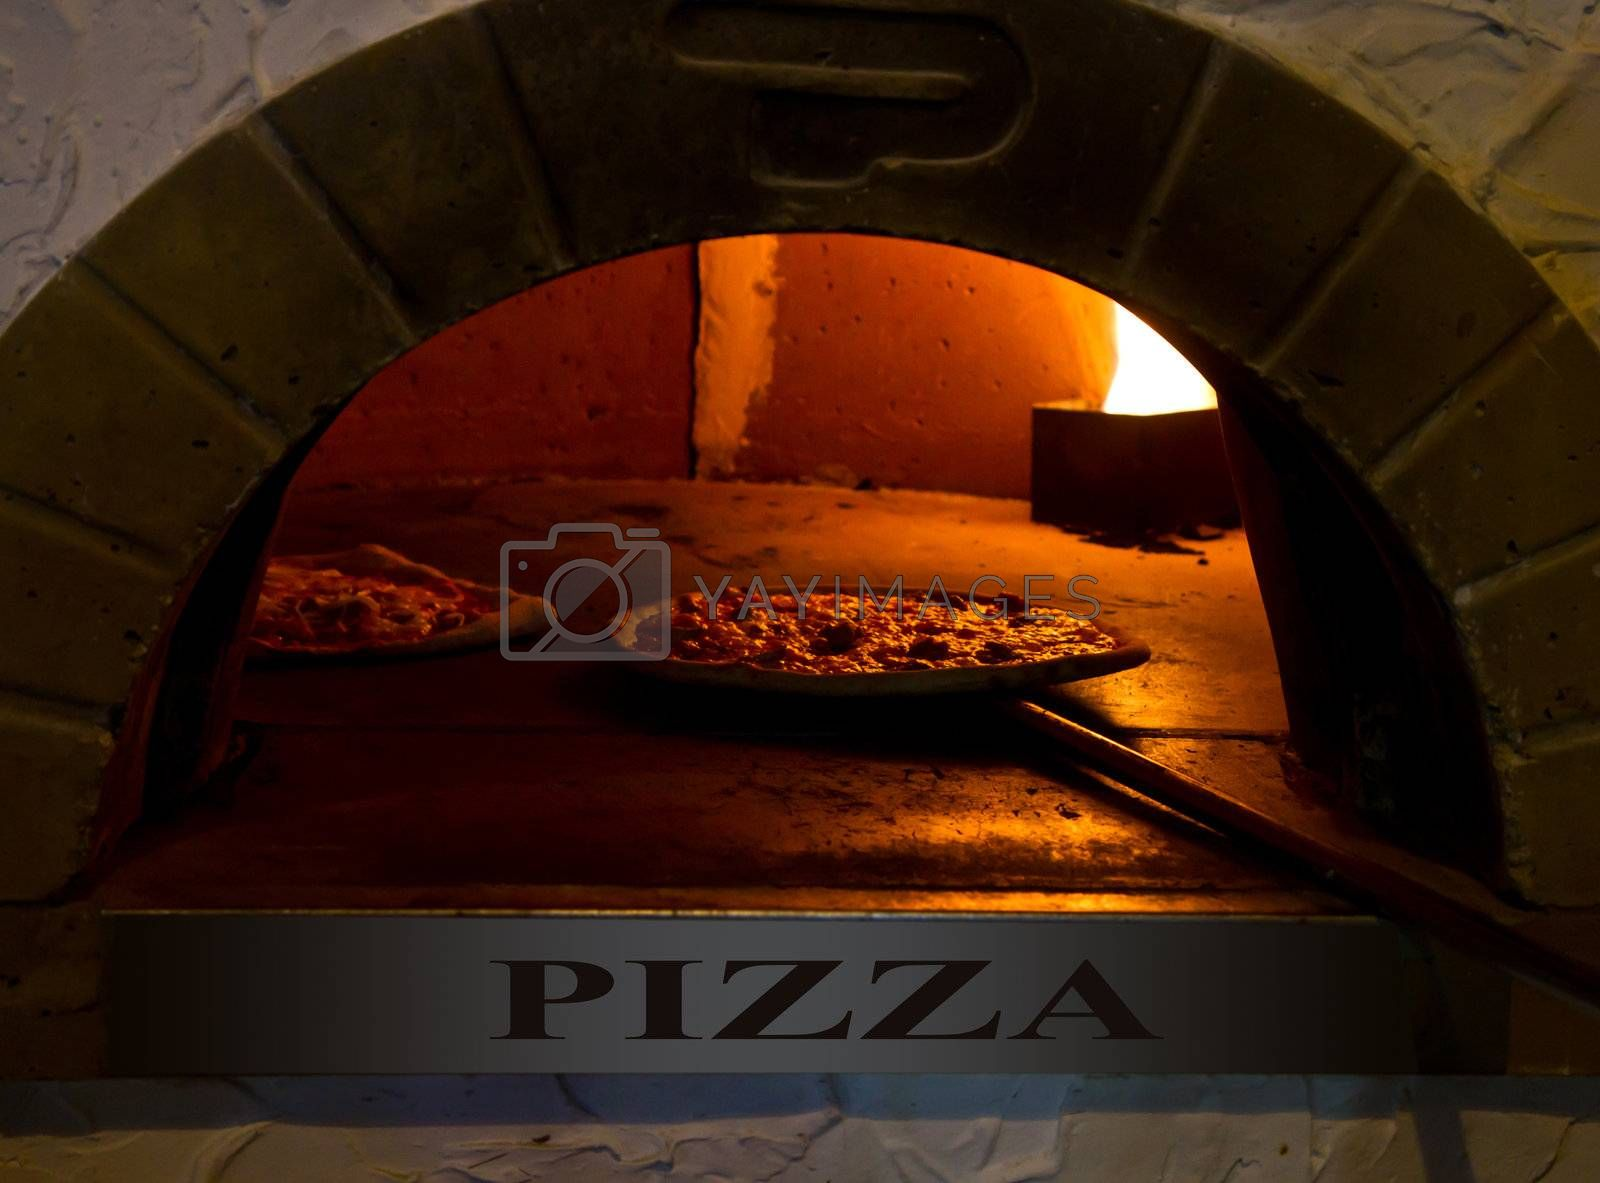 an italian Pizza baking in the oven